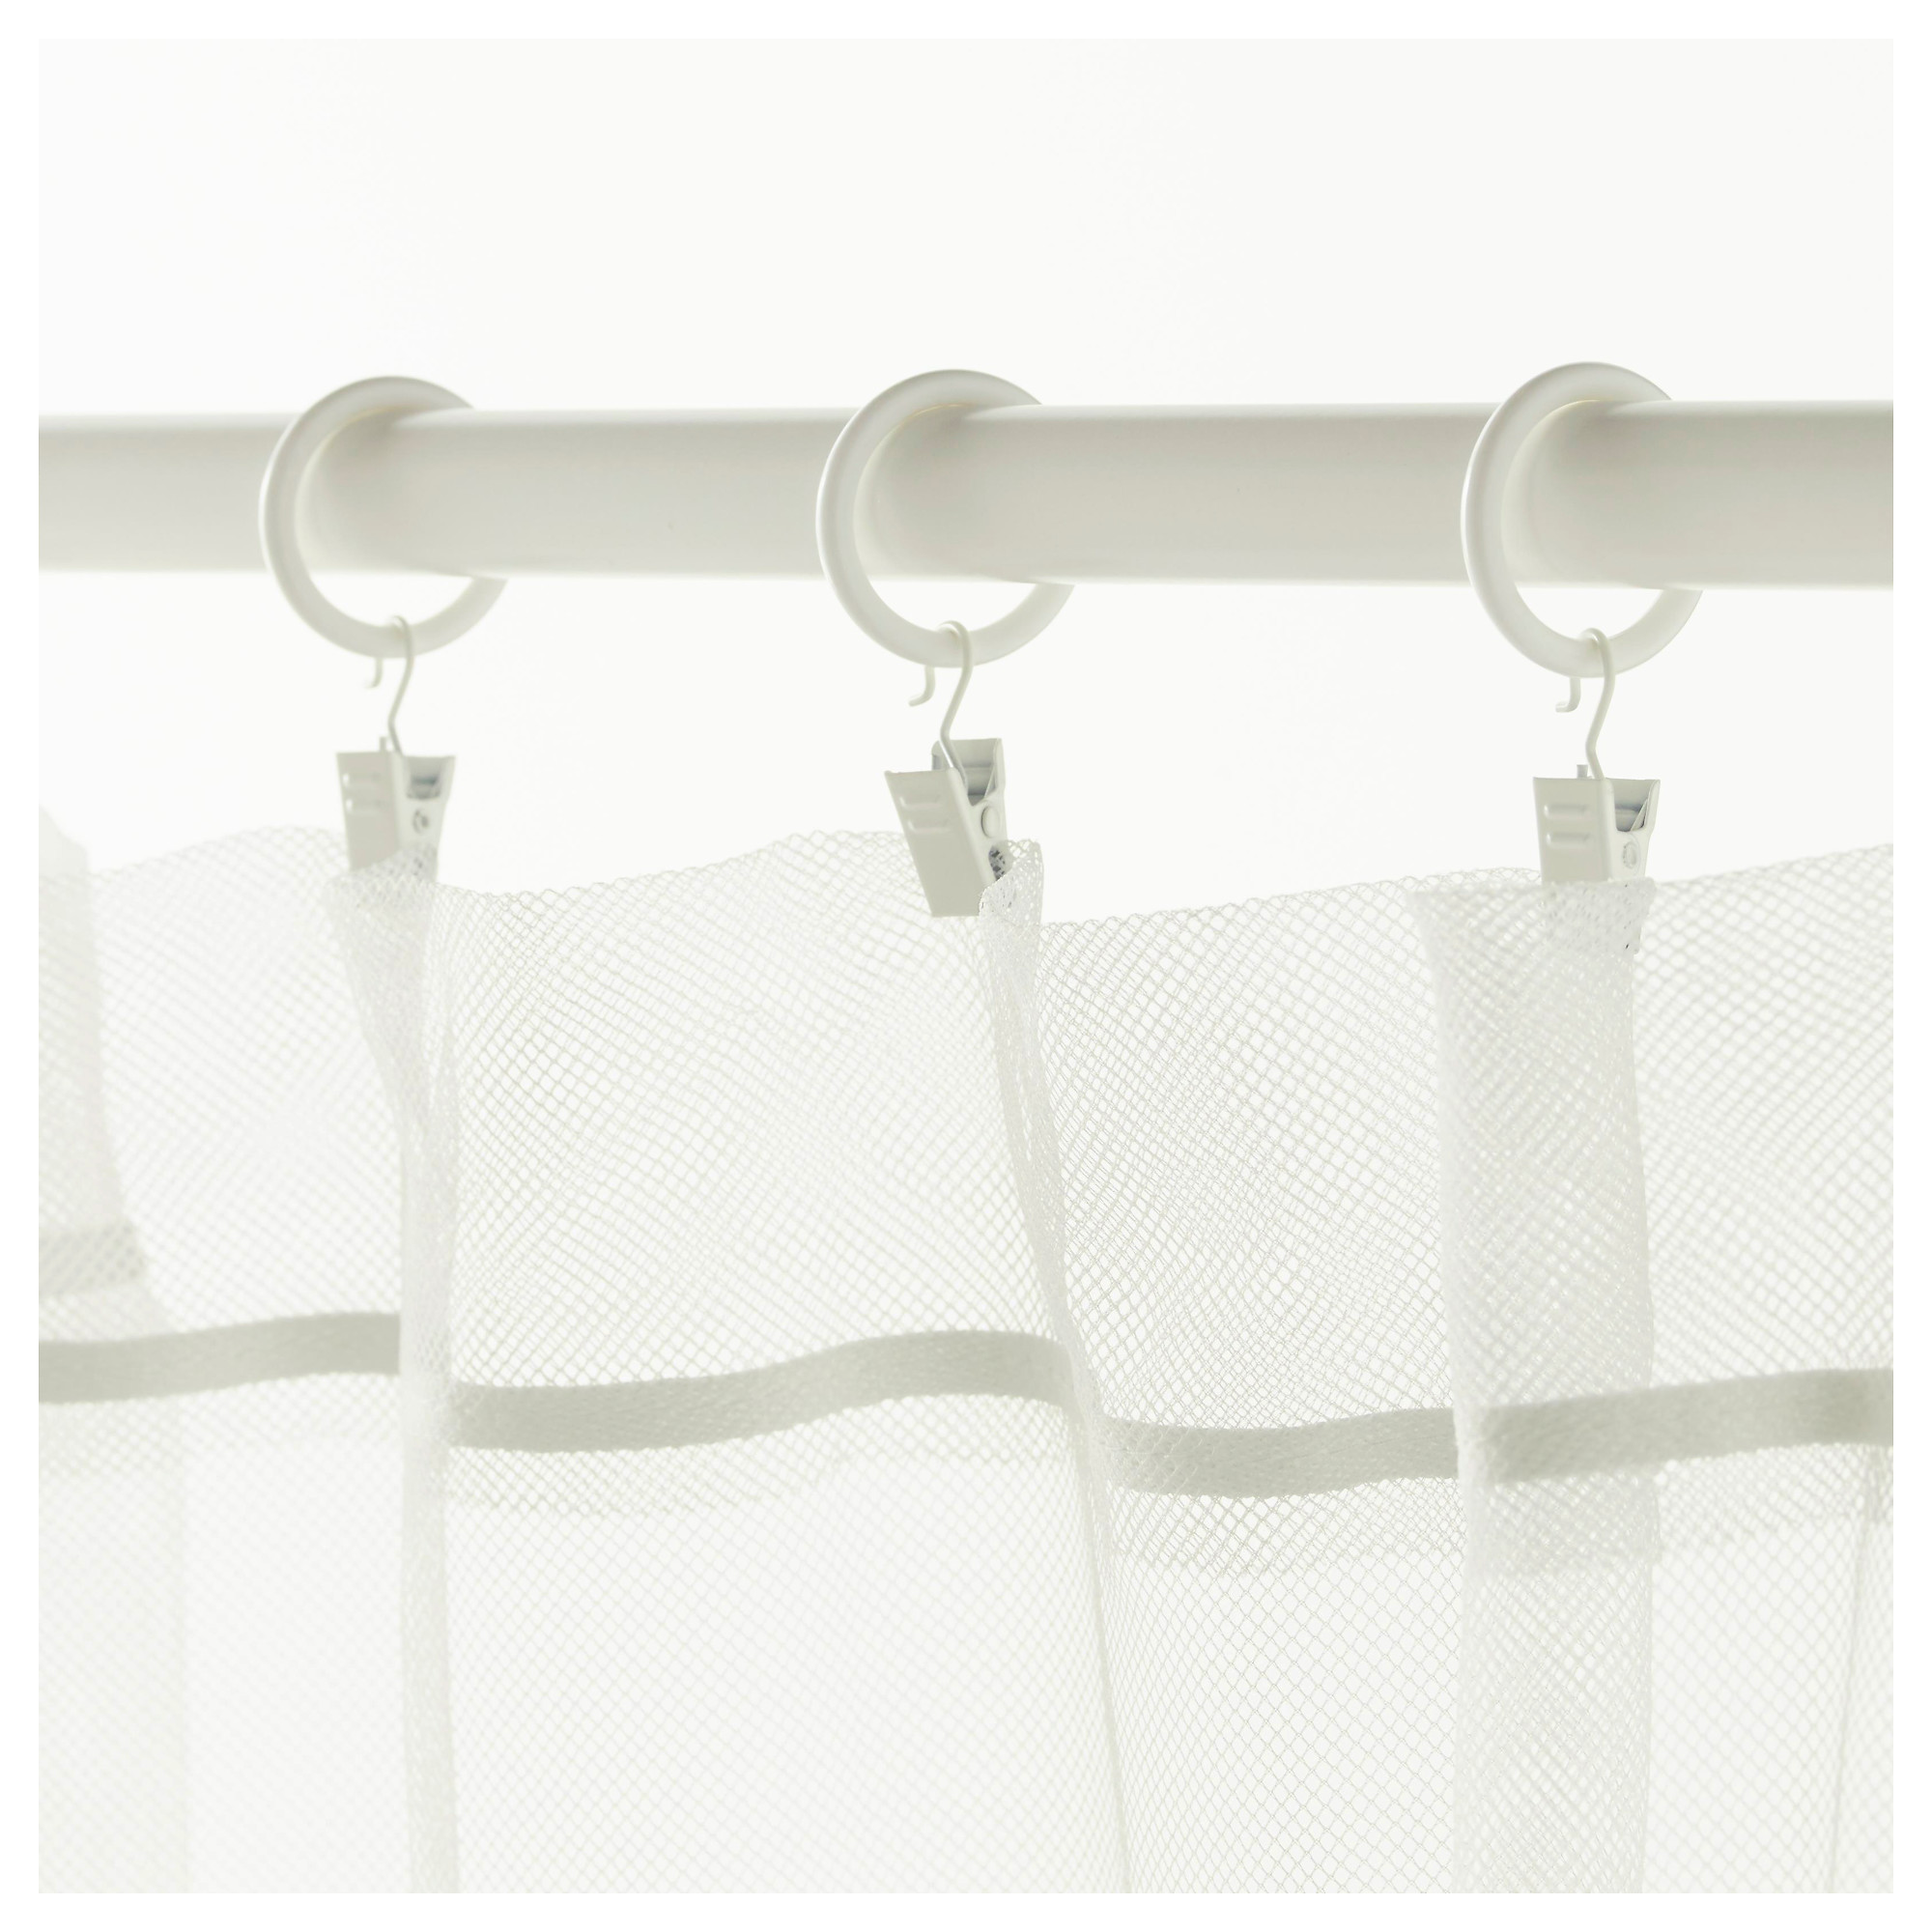 Syrlig Curtain Ring With Clip And Hook White Ikea Hong Kong